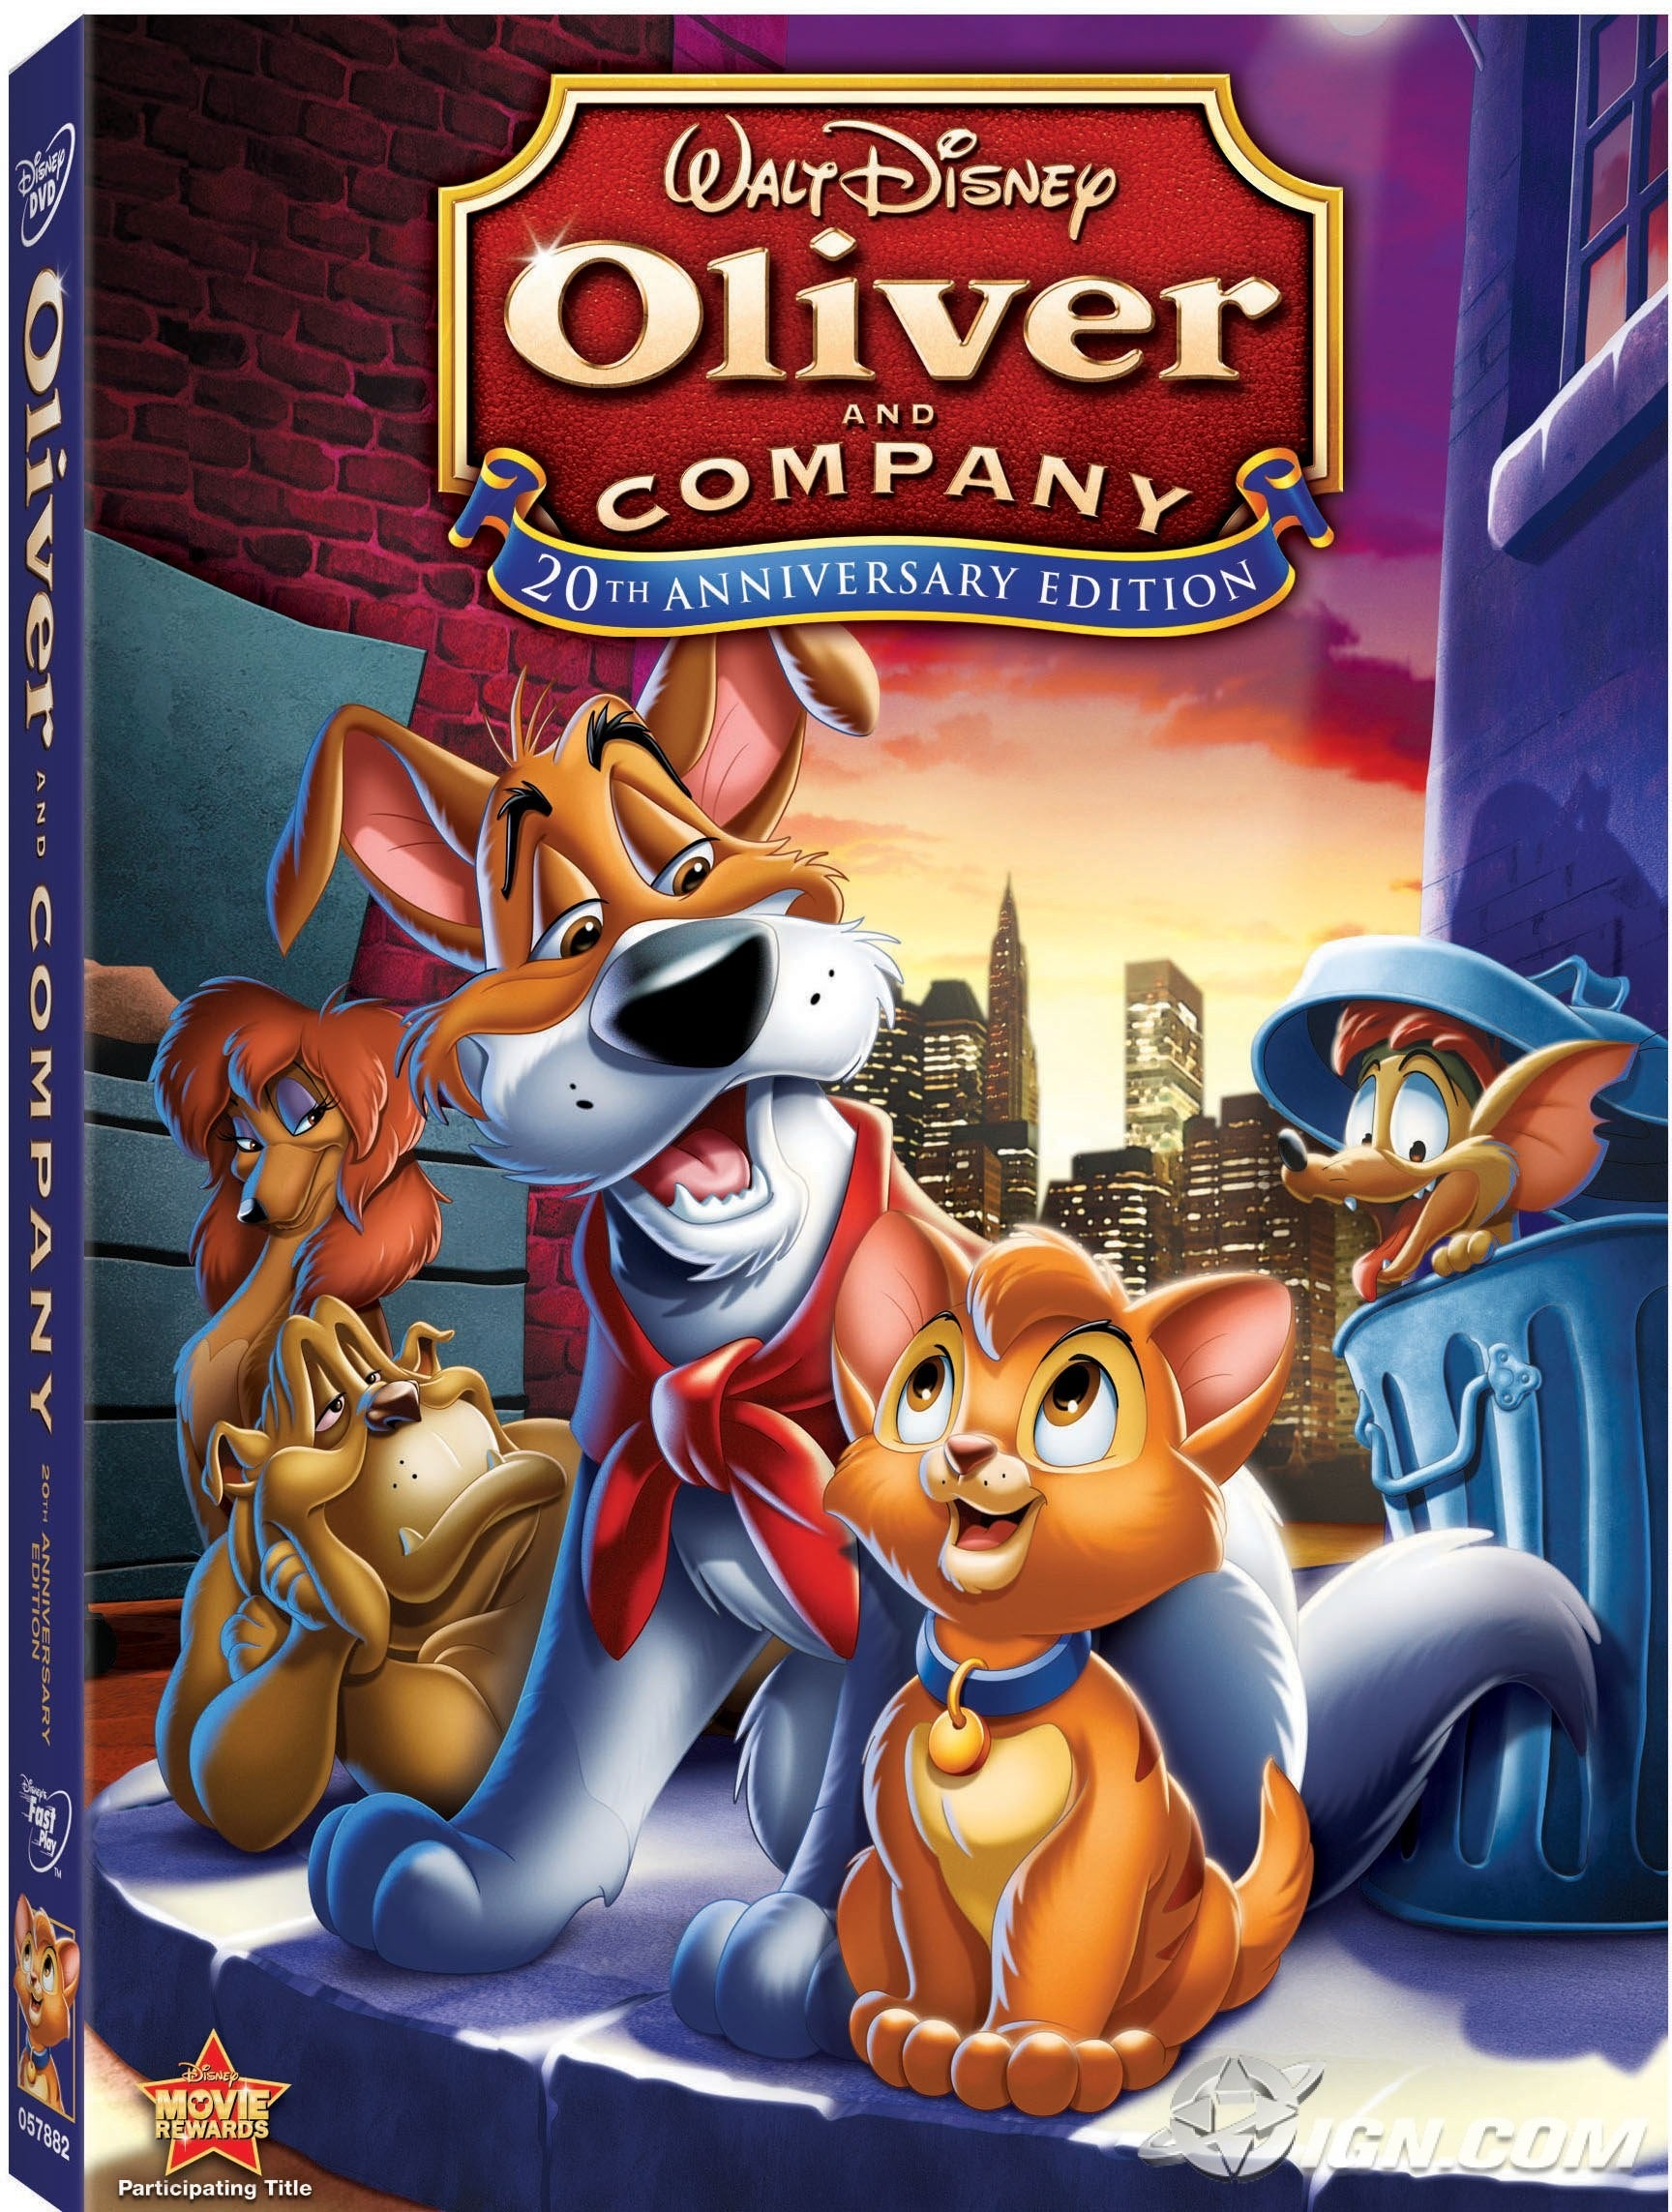 [BD] Oliver et compagnie (5 mars 2014) Oliver-and-company-20th-anniversary-edition-20081217093311679-2688187